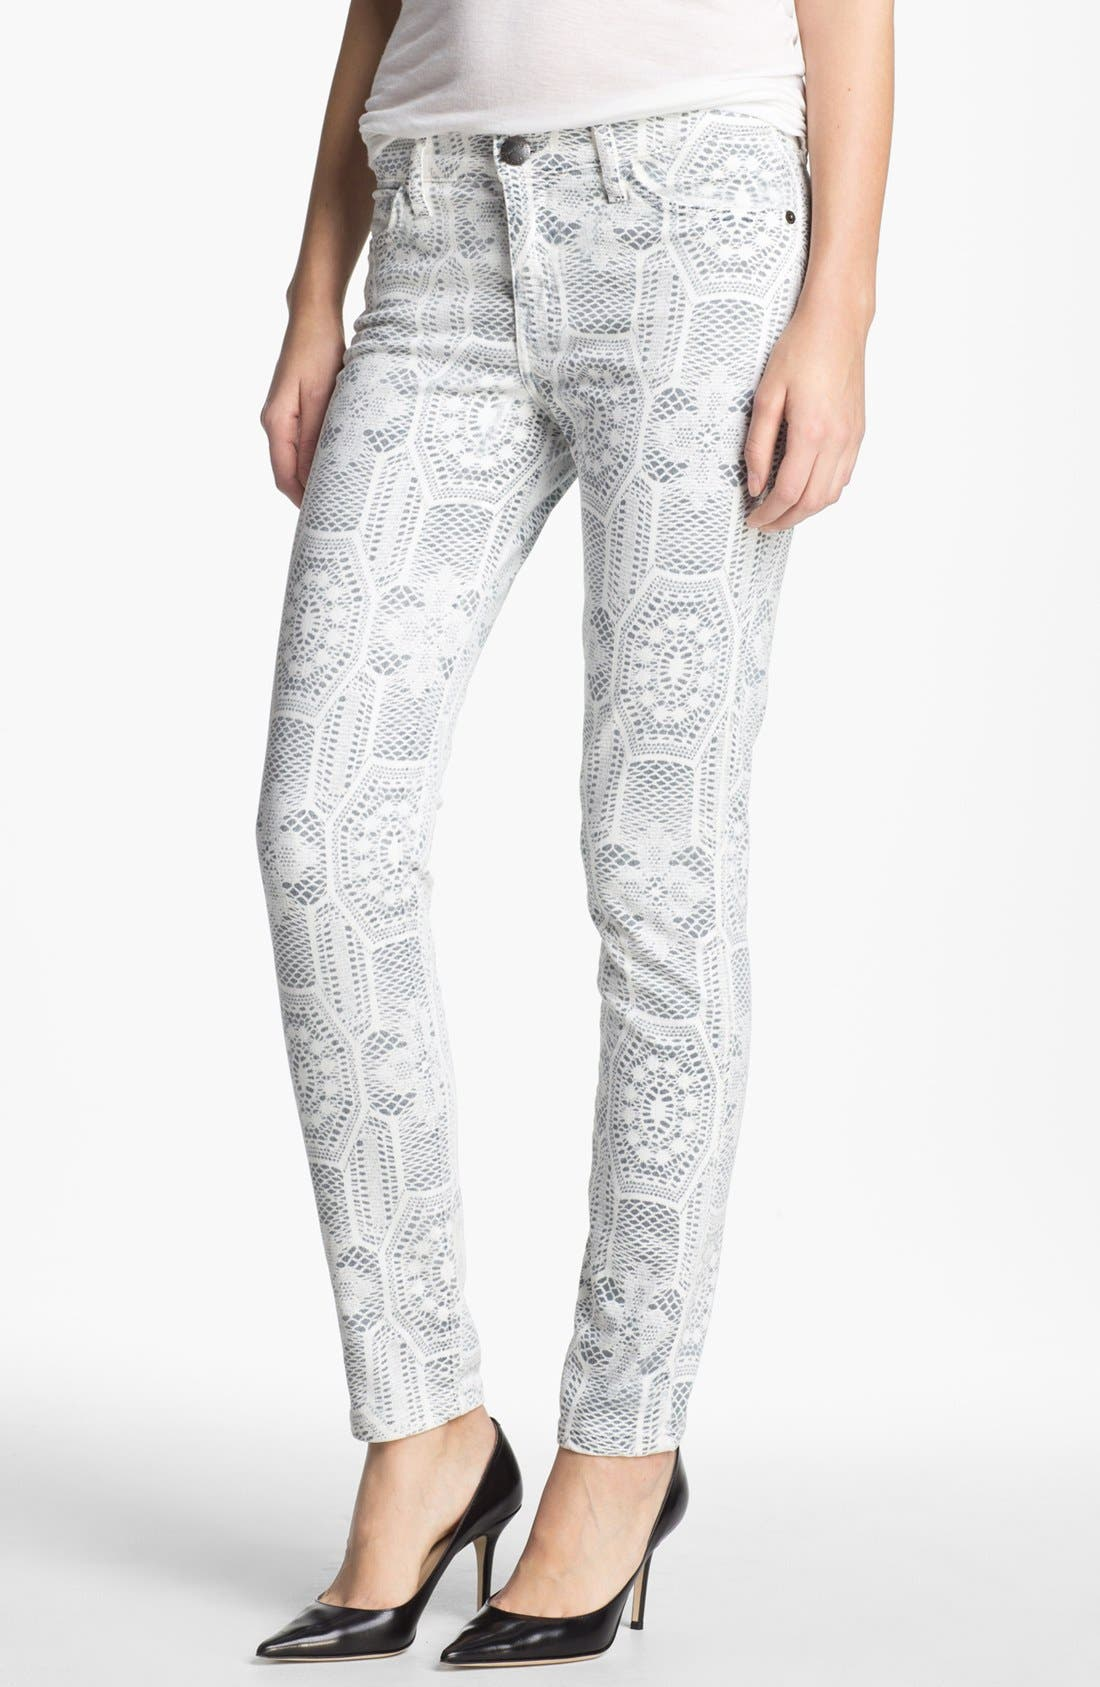 Alternate Image 1 Selected - Current/Elliott 'The Ankle Skinny' Print Stretch Jeans